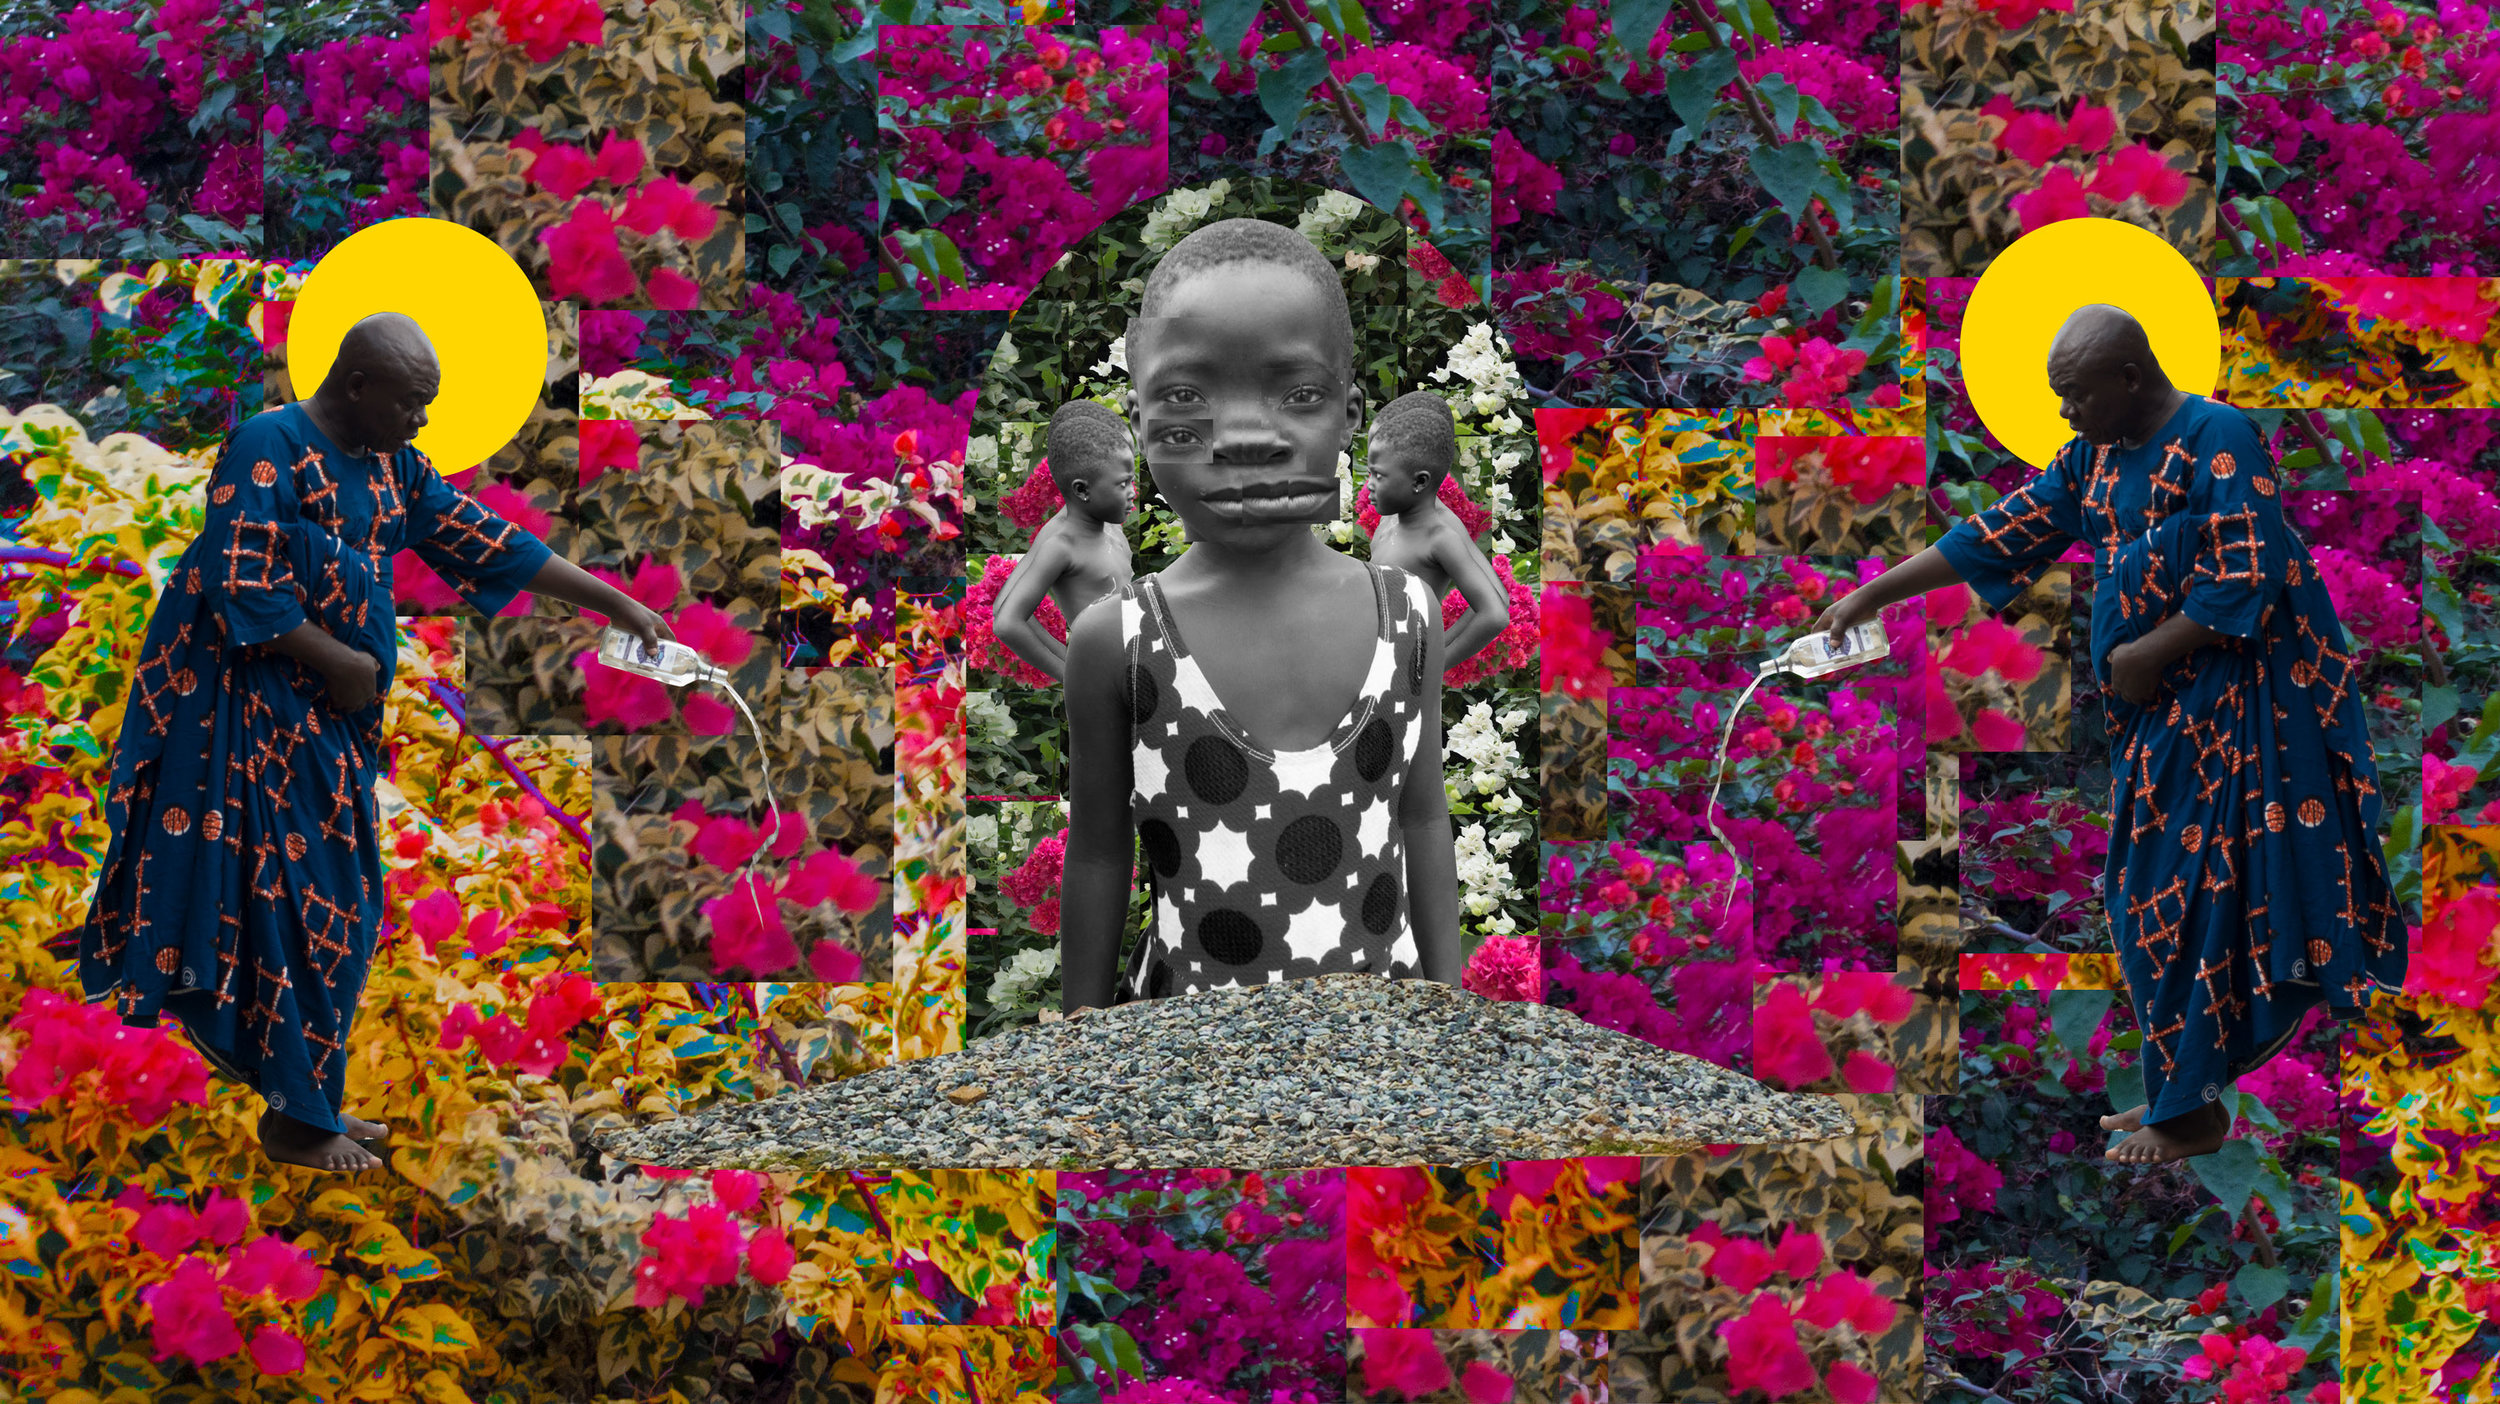 Damon Davis,  Libations For Those We Sold , 2018, 62 x 35 in., Digital Collage, Image courtesy of PRIZM Art Fair